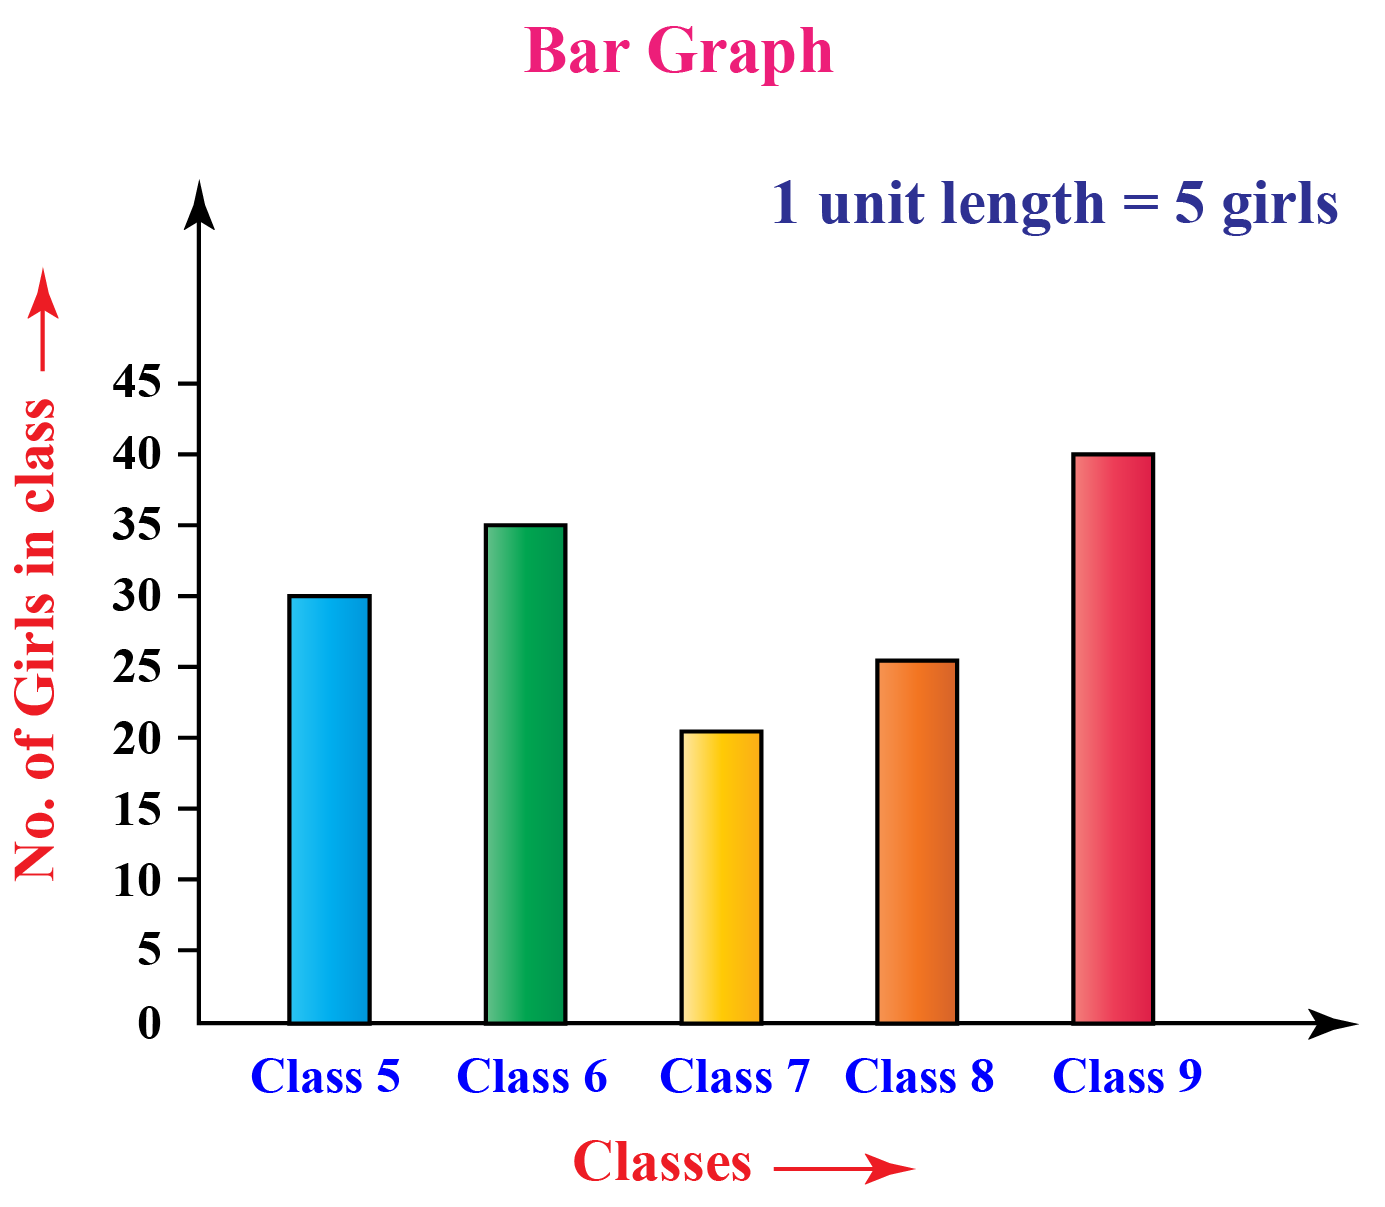 draw the bar with heights corresponding to the value of the data.